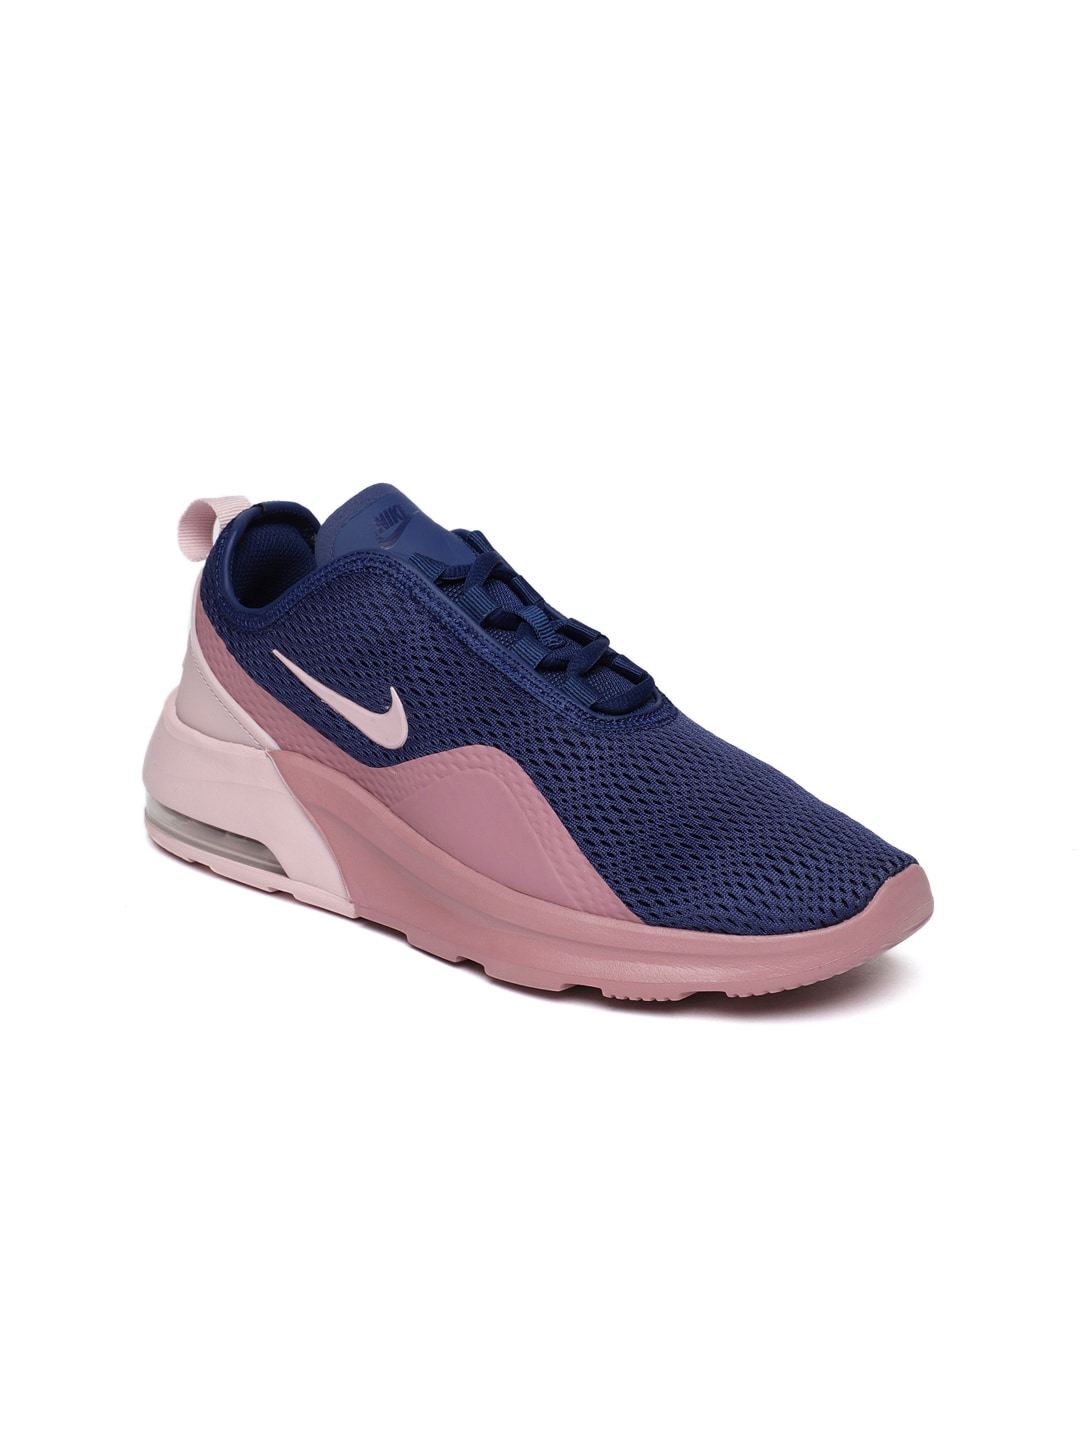 new product 069de 0f75b Nike Air Max - Buy Nike Air Max Shoes, Bags, Sneakers in India